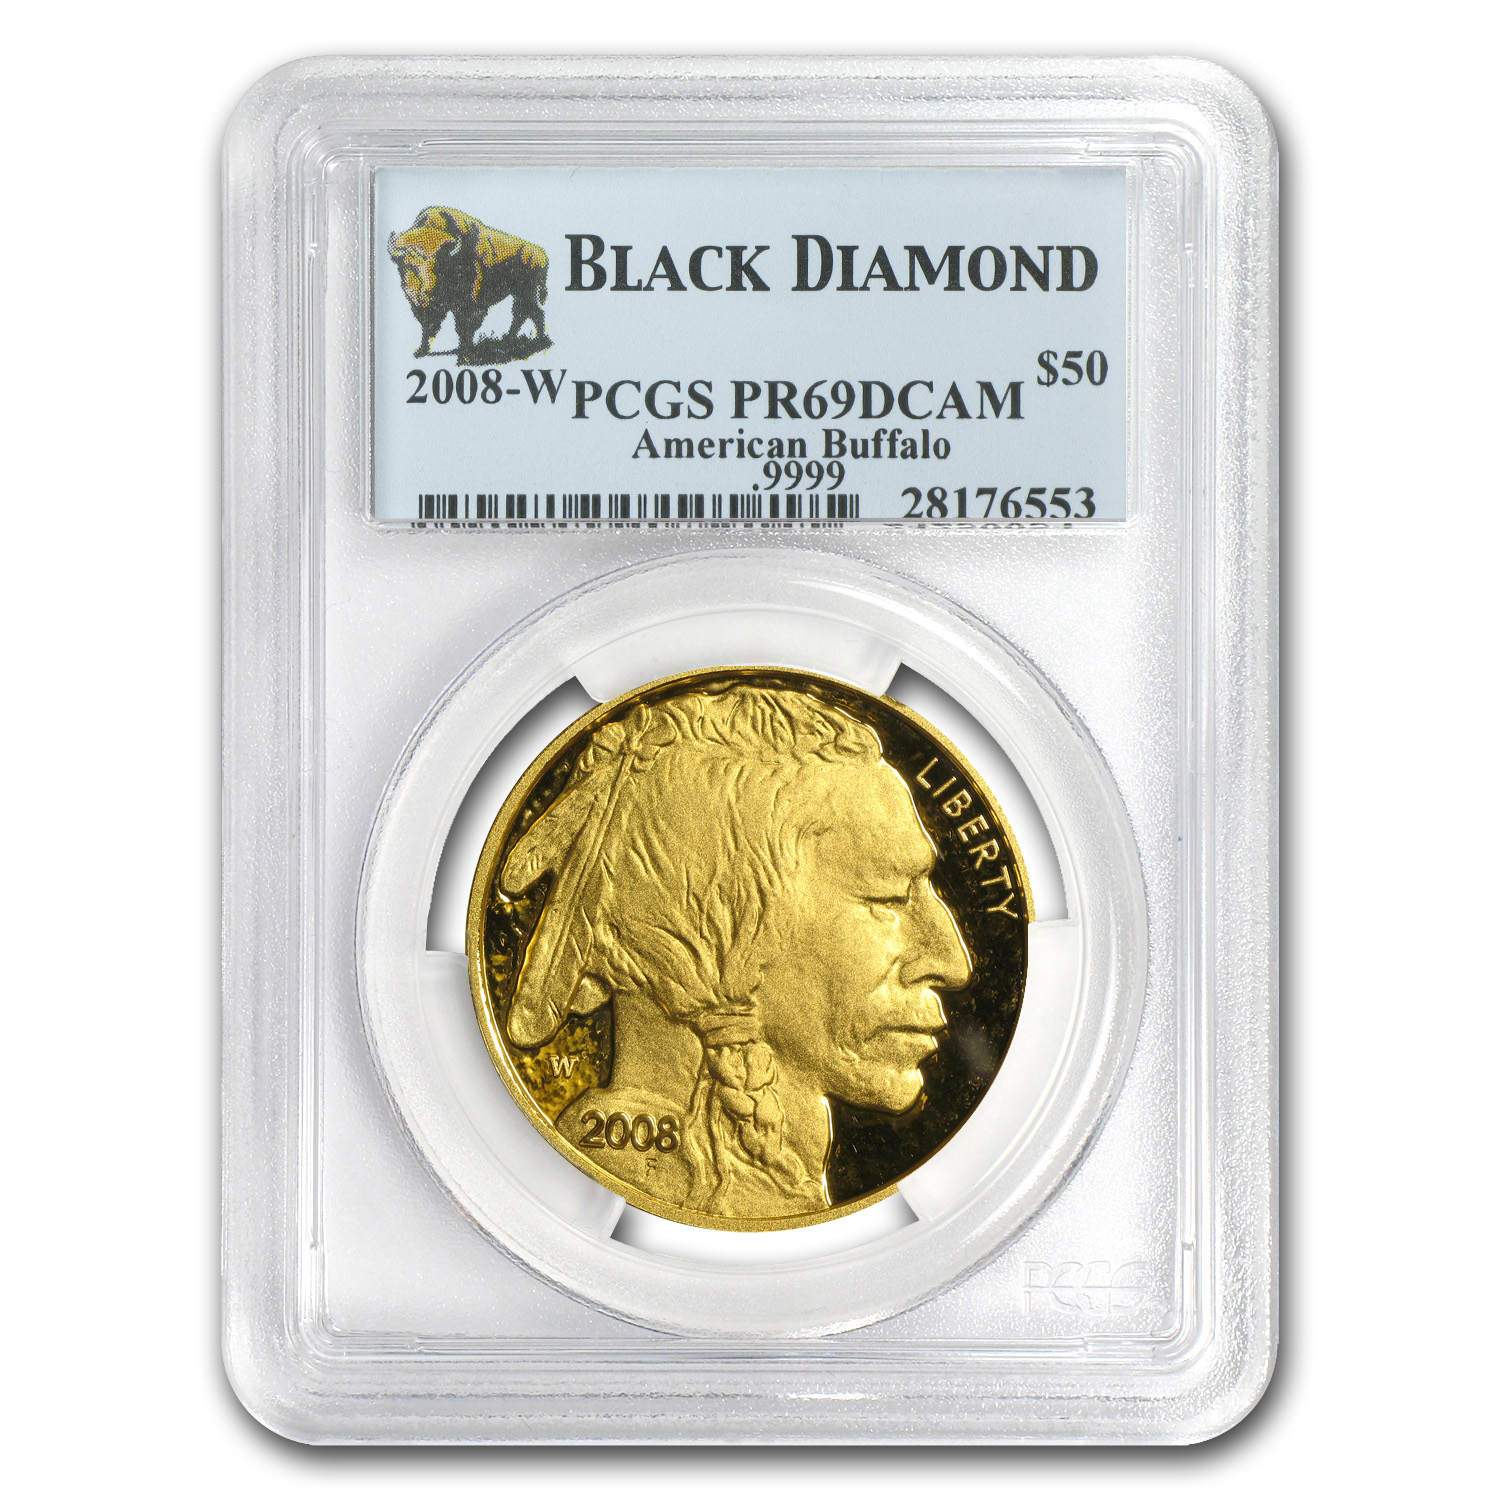 2008-W 1 oz Proof Gold Buffalo PR-69 PCGS (Black Diamond)